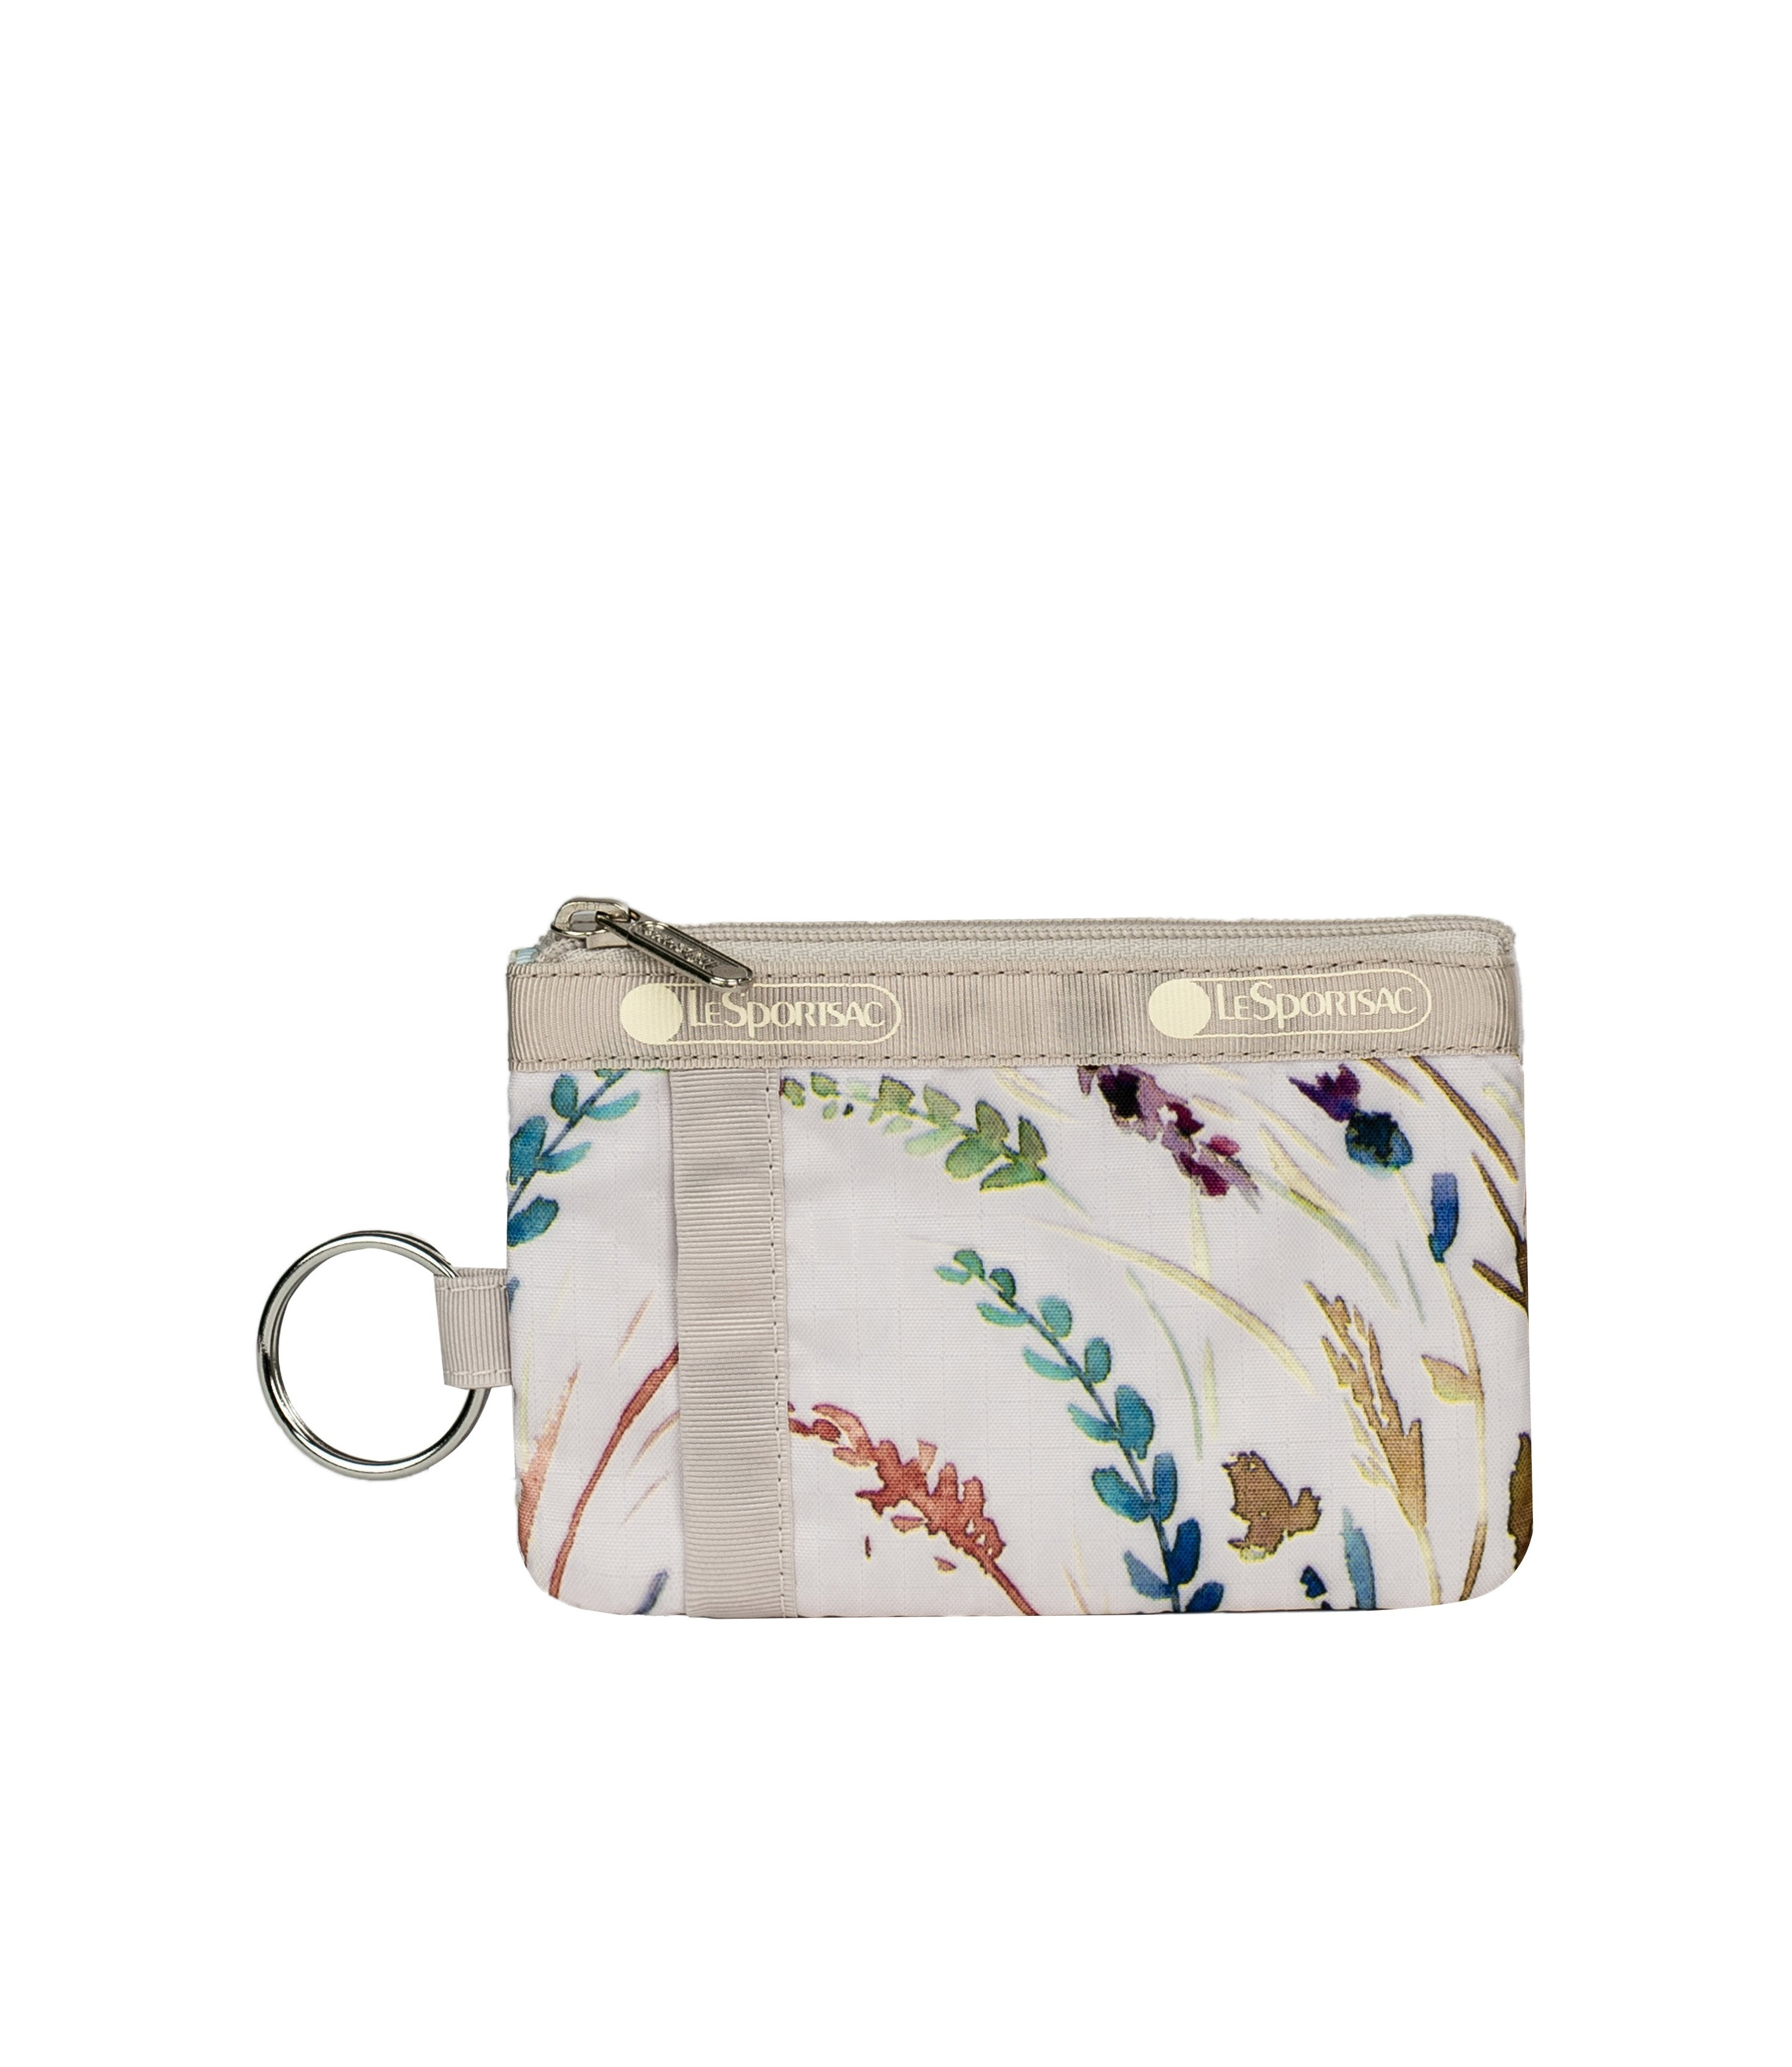 LeSportsac - Accessories - ID Card Case - Windswept Floral print